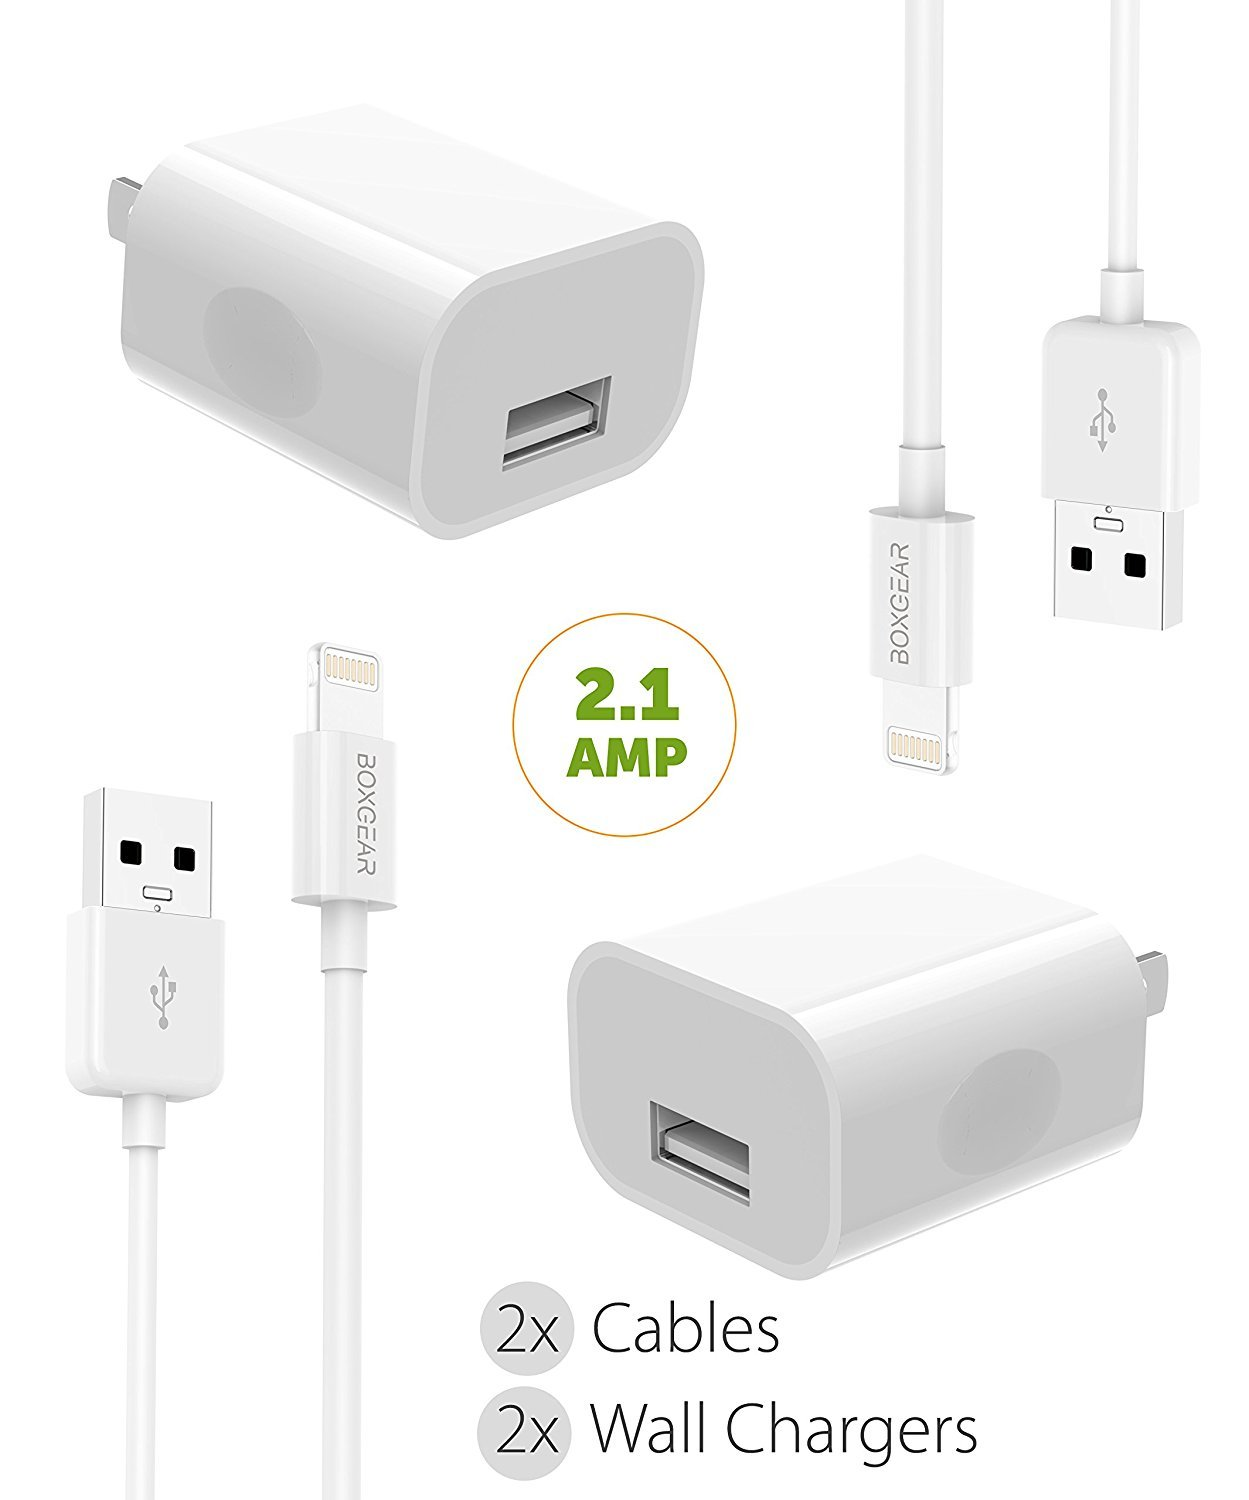 iPhone X Charger iPhone X / 8/8 Plus / 7 Plus / 7 / 6S plus / 6S / 6 / Apple Lightning Cable Kit by Boxgear - { 2 Wall Charger + 2 Cable }, Apple MFi Certified USB Cables (White)